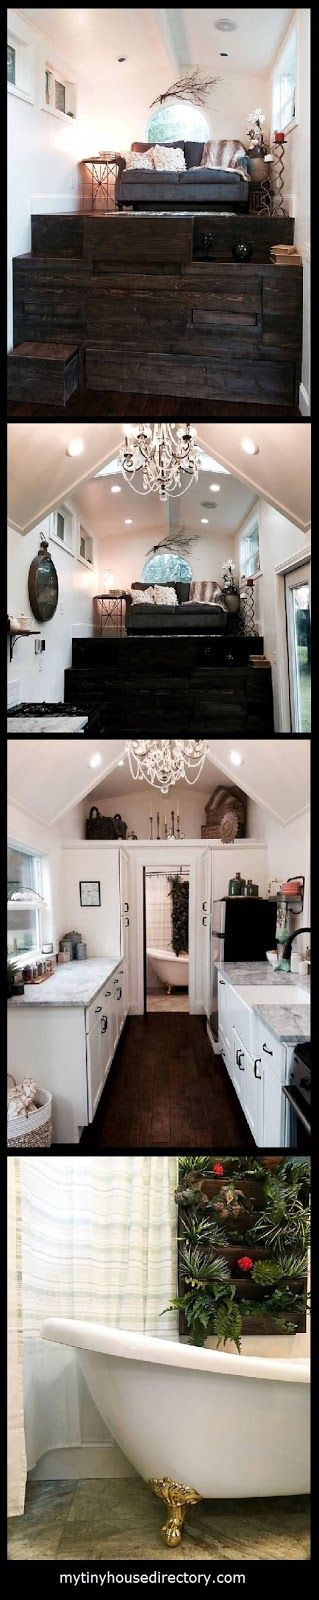 mytinyhousedirectory: This Tiny House is a Luxurious Tiny Mansion